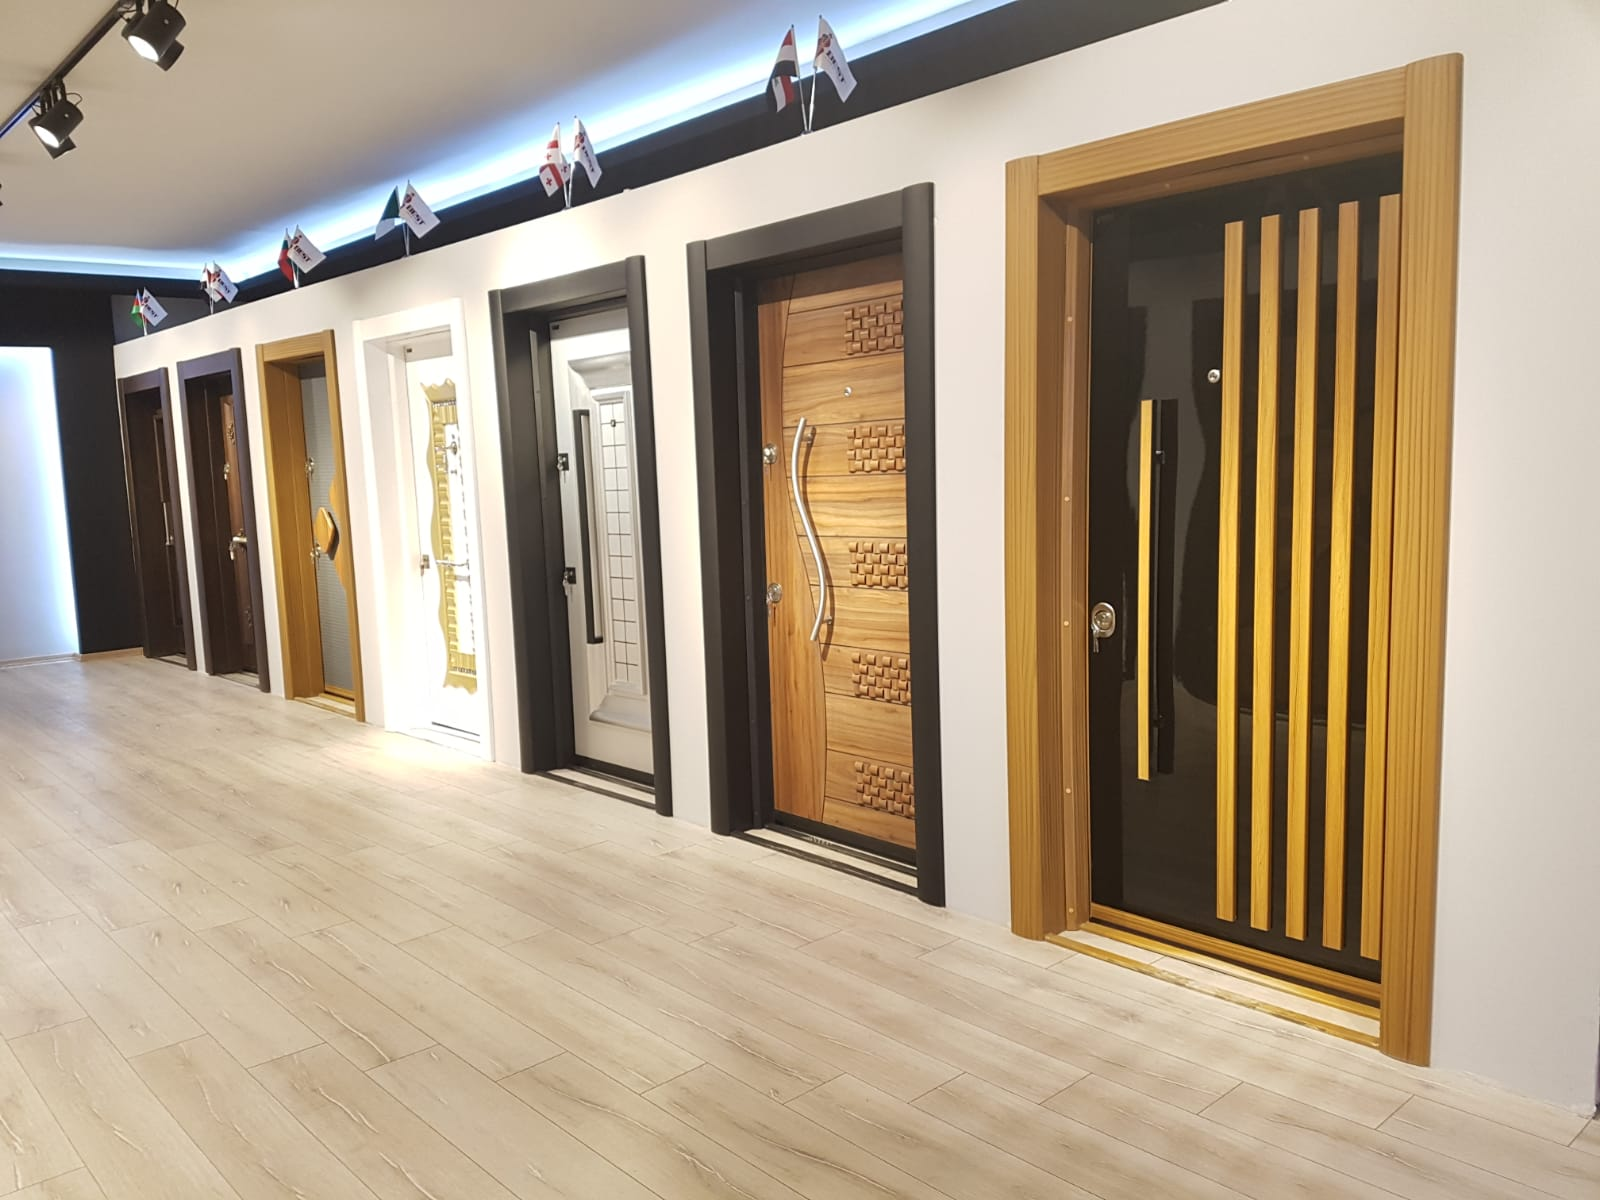 High Quaily Fire Rated Door-with panic bar and wood patterned paint-Fire Exit Door